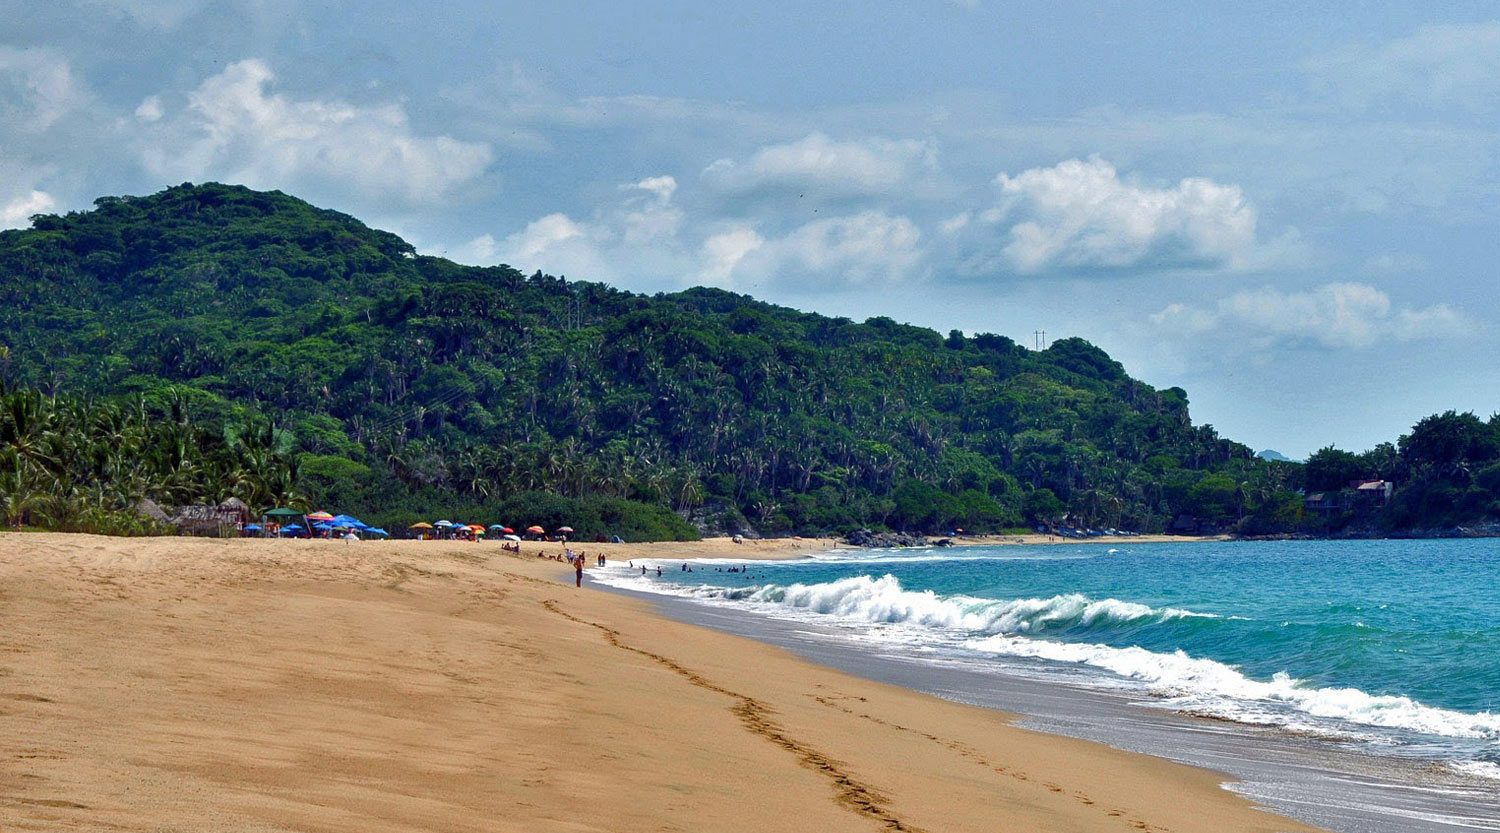 San Pancho's beach and mountains